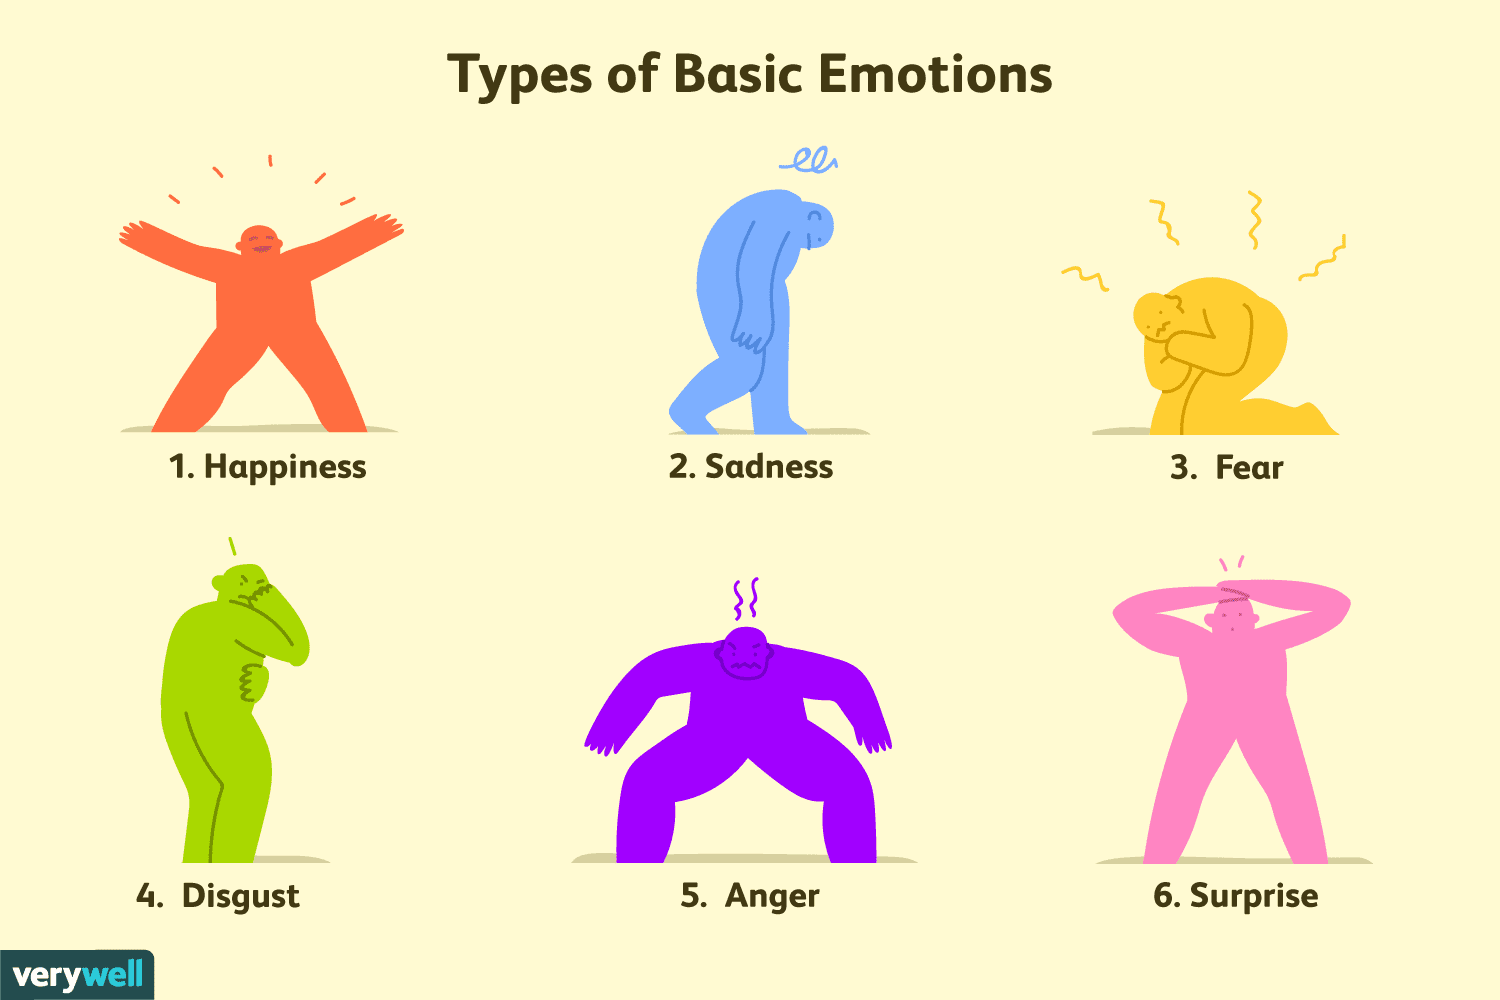 Preposition In Learn In Marathi All Complate: The 6 Types Of Basic Emotions